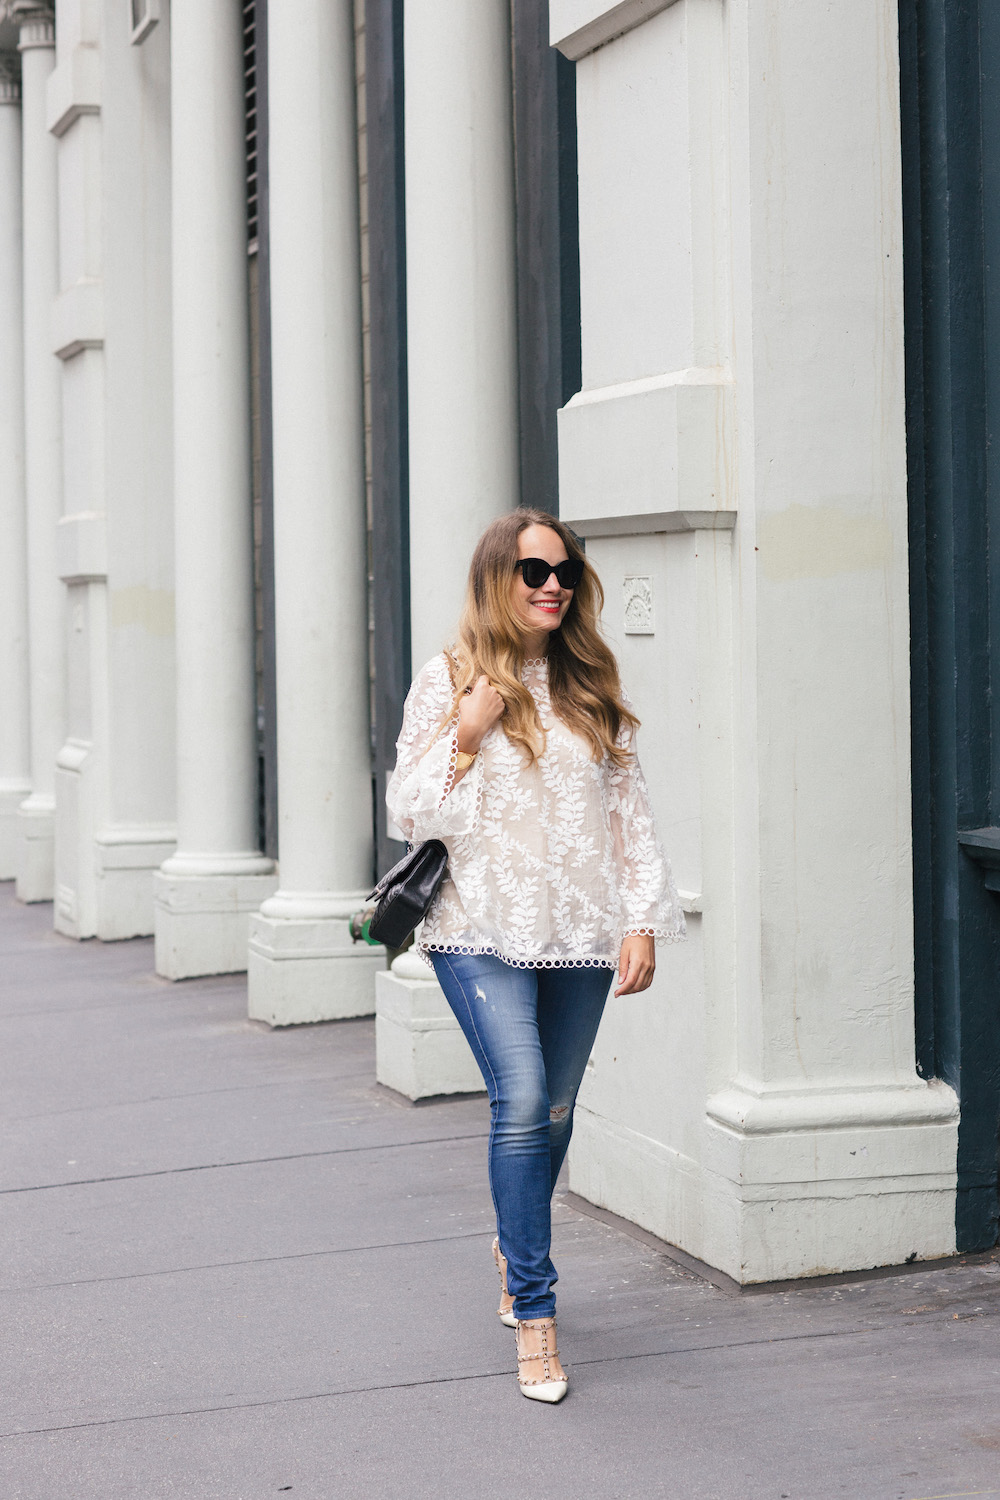 J.Crew Regent Topcoat // Zimmermann Lace Blouse // 7 for all Mankind Jeans // Valentino Rockstud Pumps | Grace Atwood, The Stripe